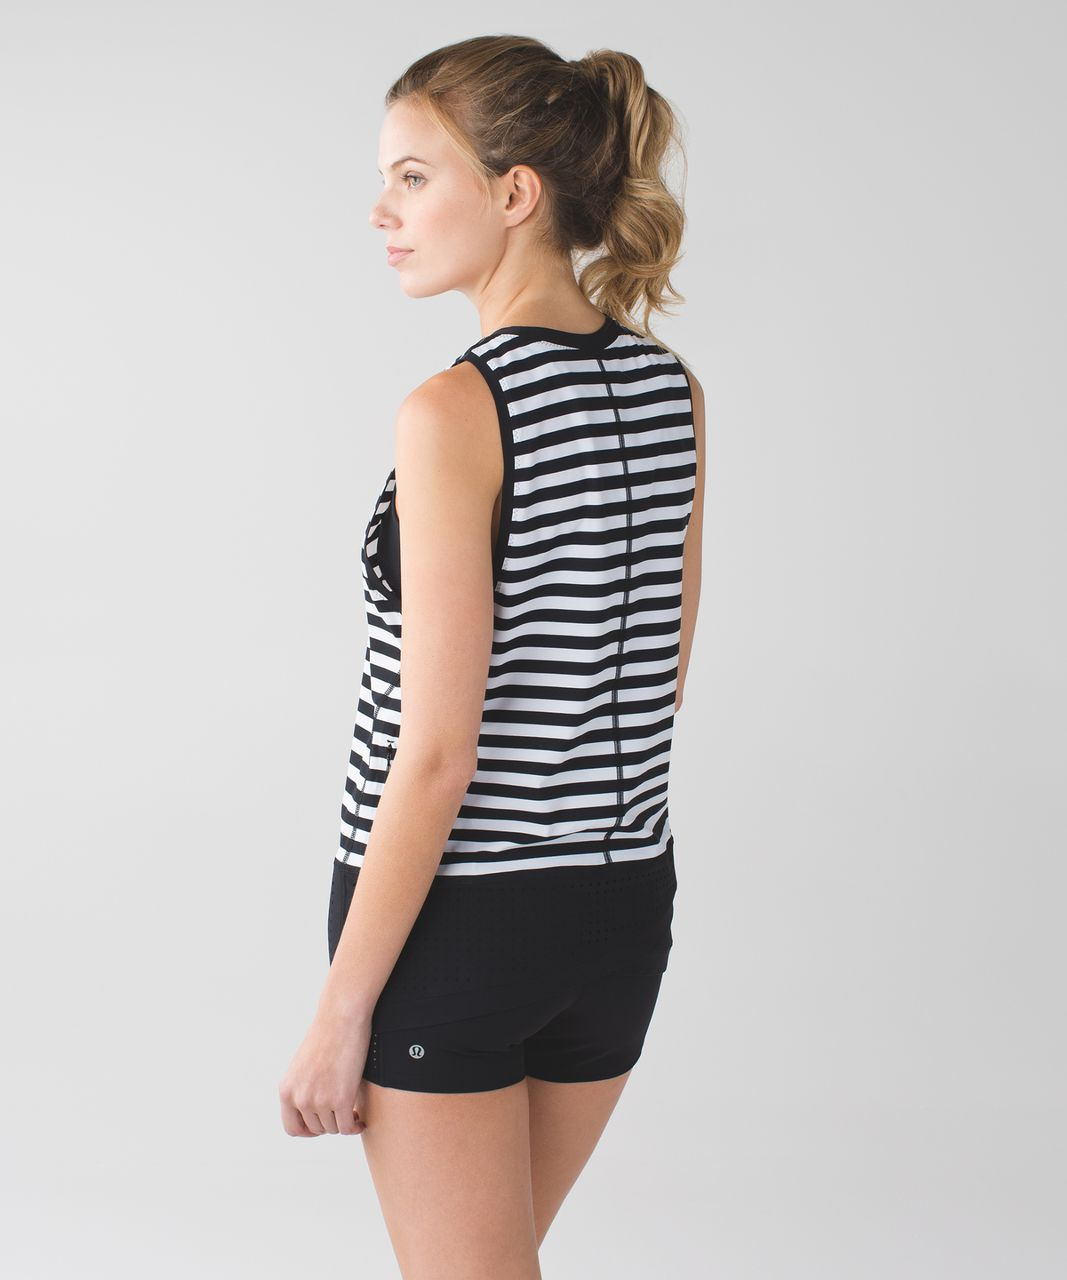 Lululemon Vent It Tank - Apex Stripe Printed White Black / Black